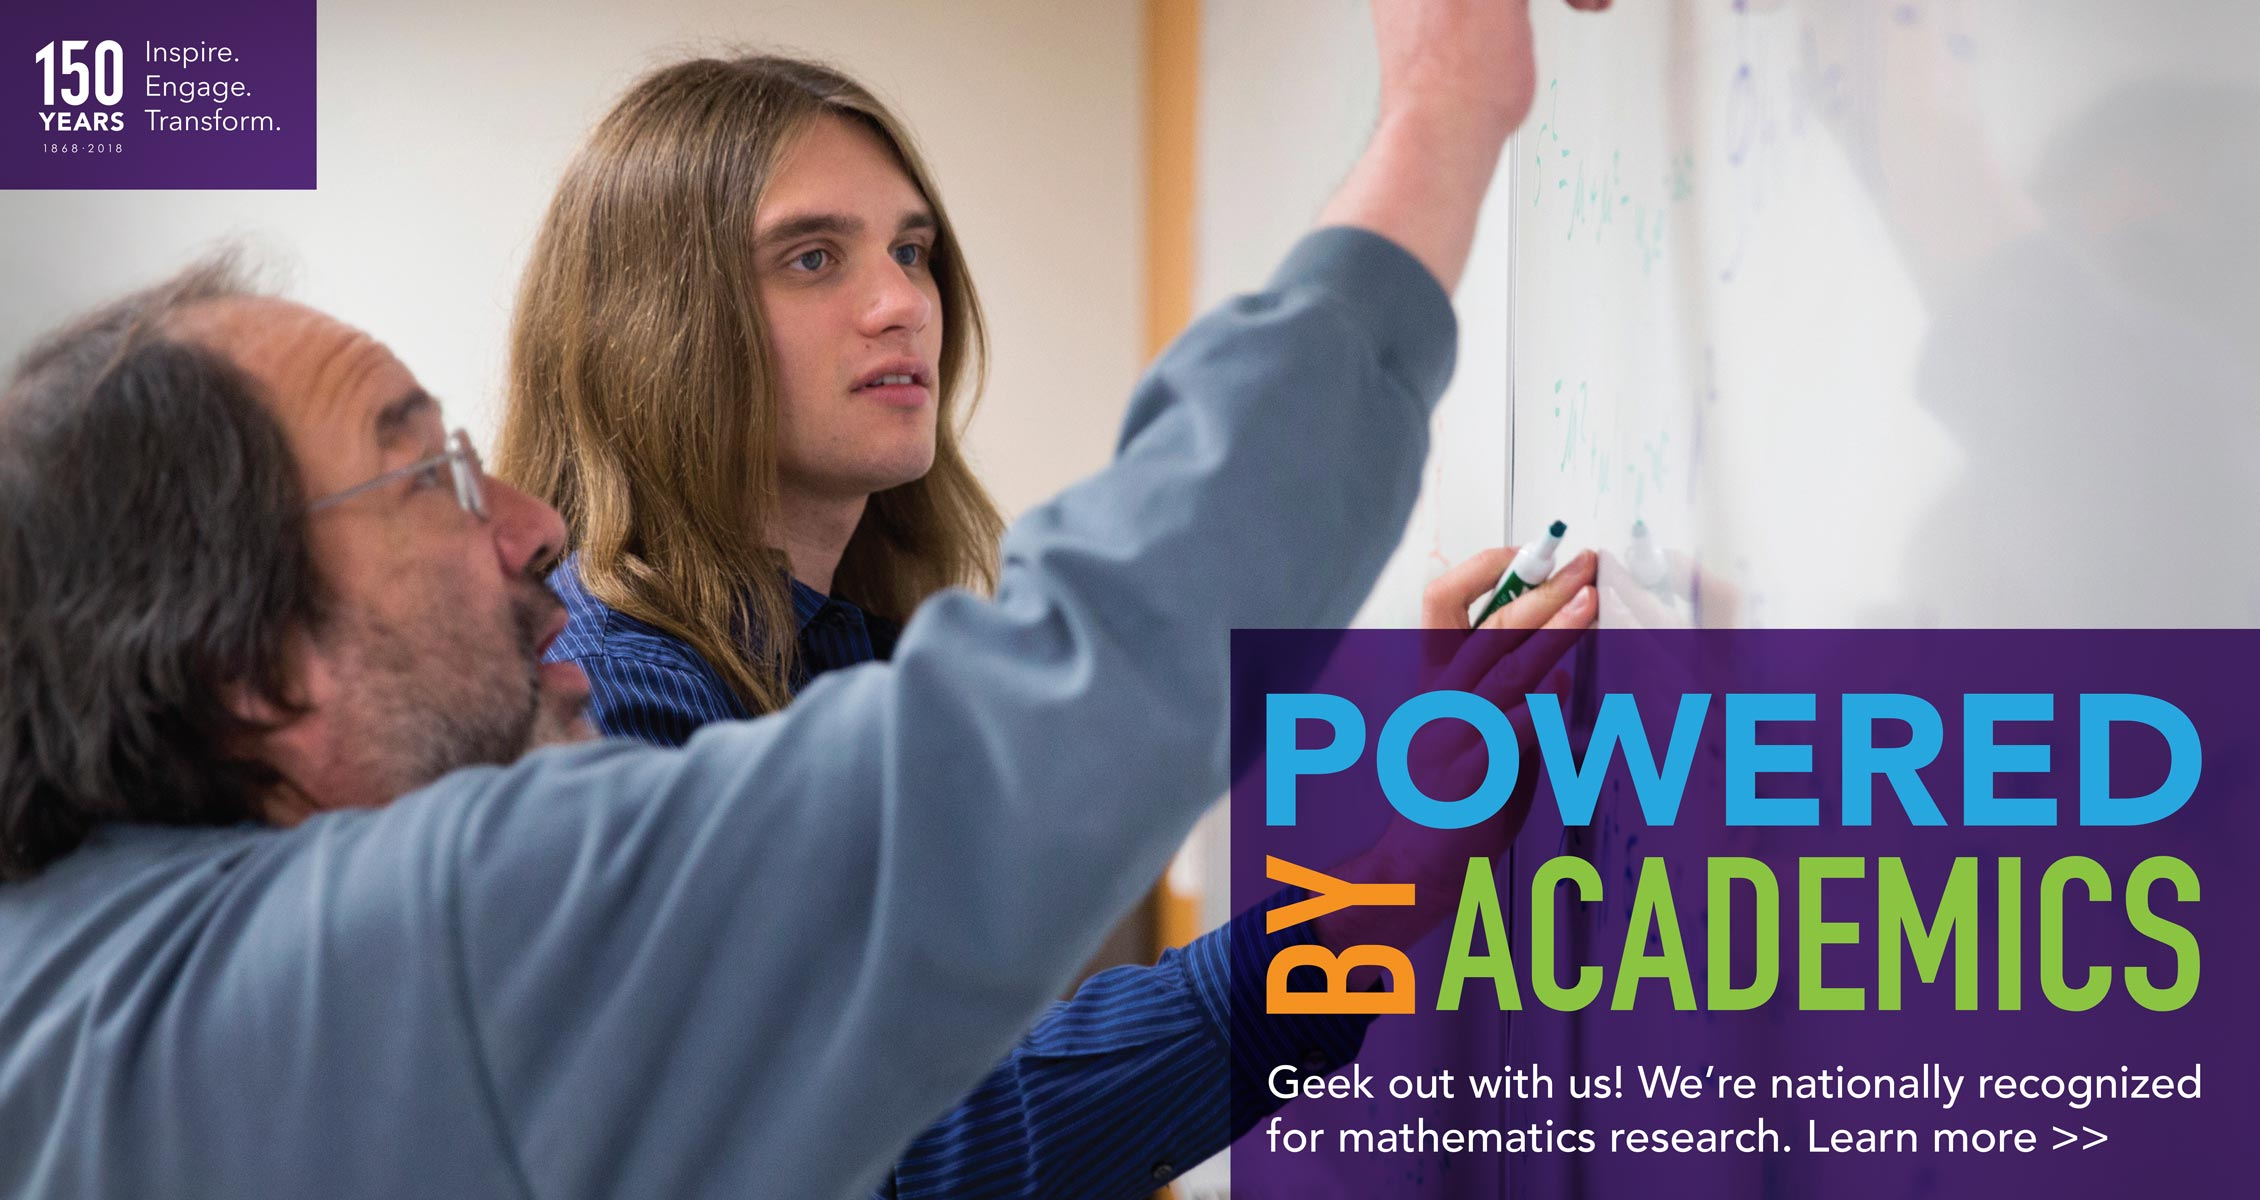 Geek out with us! We're nationally recognized for mathematics research. Learn more >>